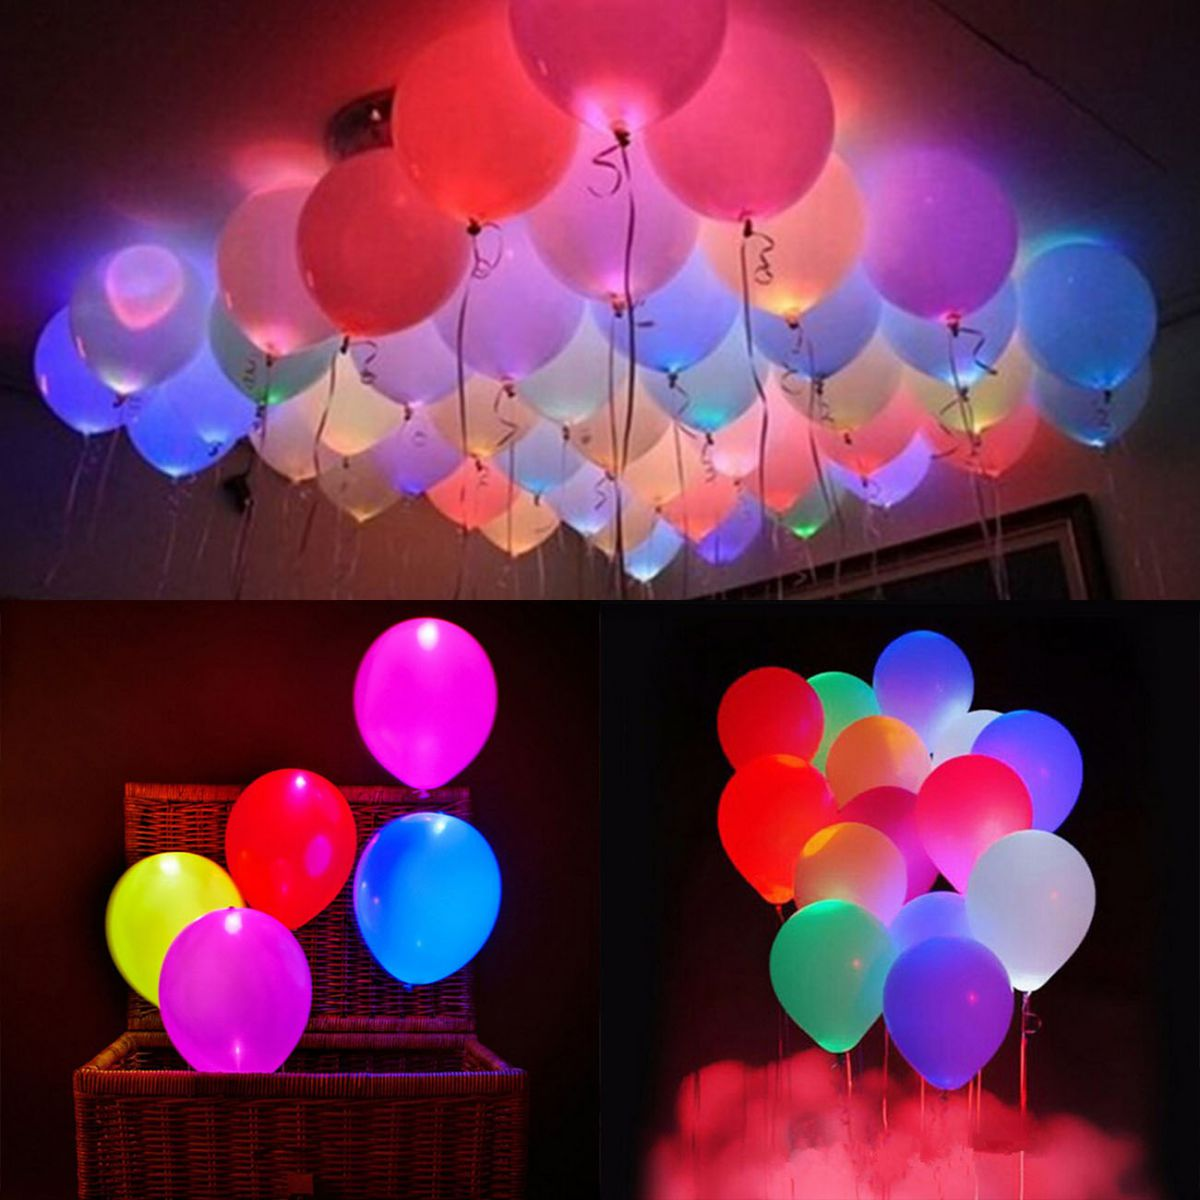 leuchtende led luftballons geburtstag hochzeit party deko club licht ballons ebay. Black Bedroom Furniture Sets. Home Design Ideas